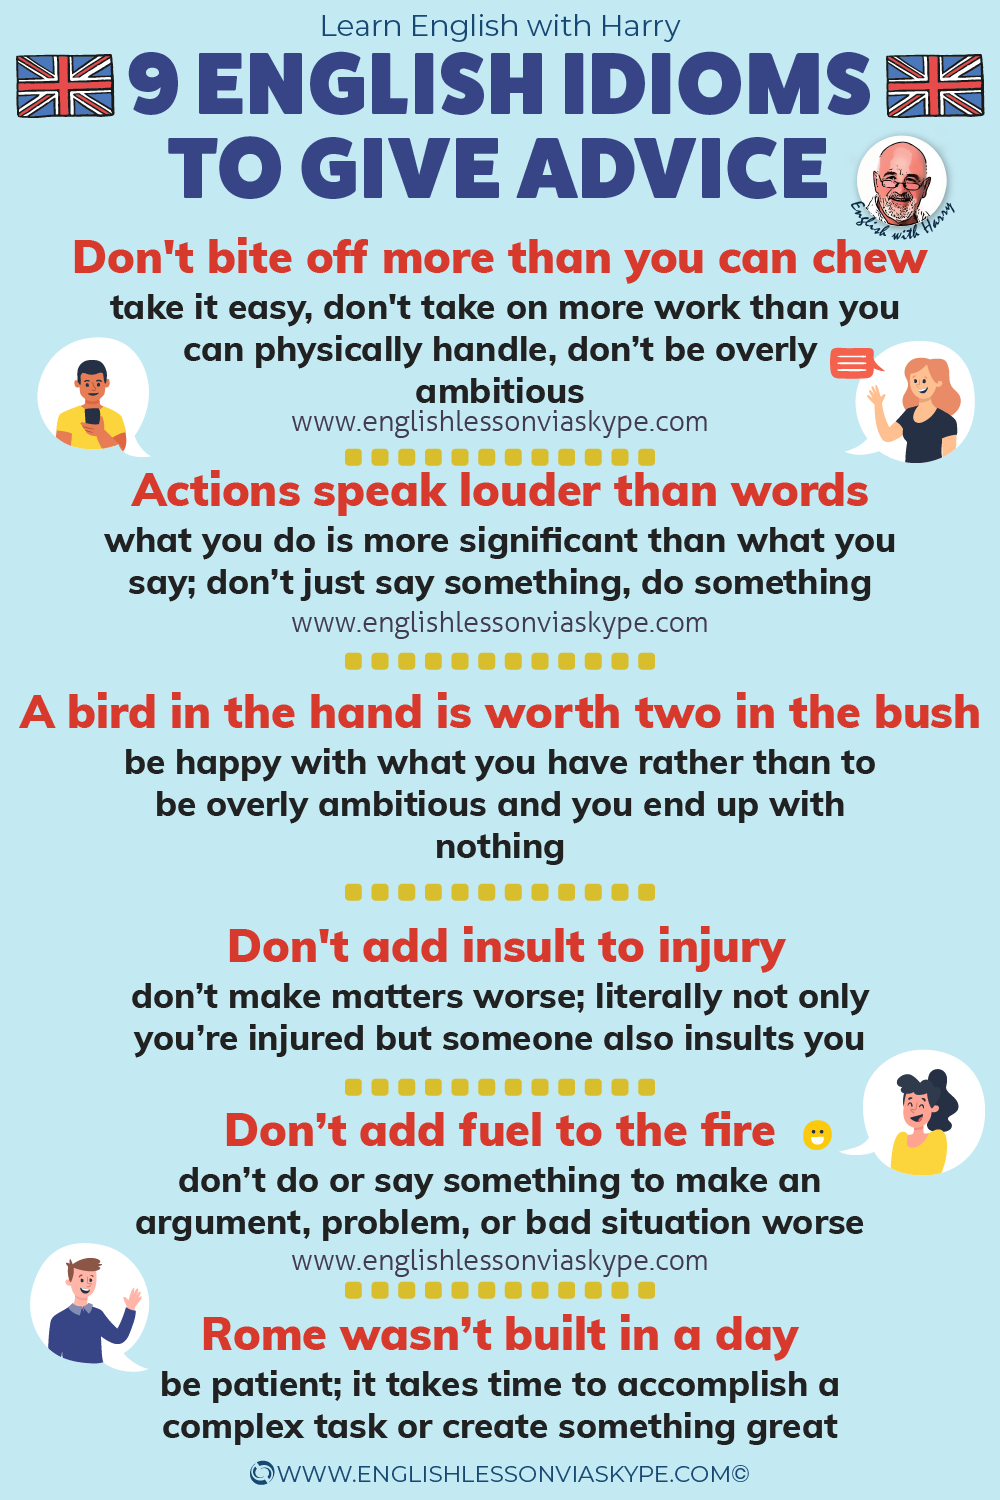 Learn 9 English Idioms for Giving Advice and Warnings. Advanced English learning. Improve English from intermediate to advanced level. Advanced English lessons online at www.englishlessonviaskype.com #learnenglish #englishlessons